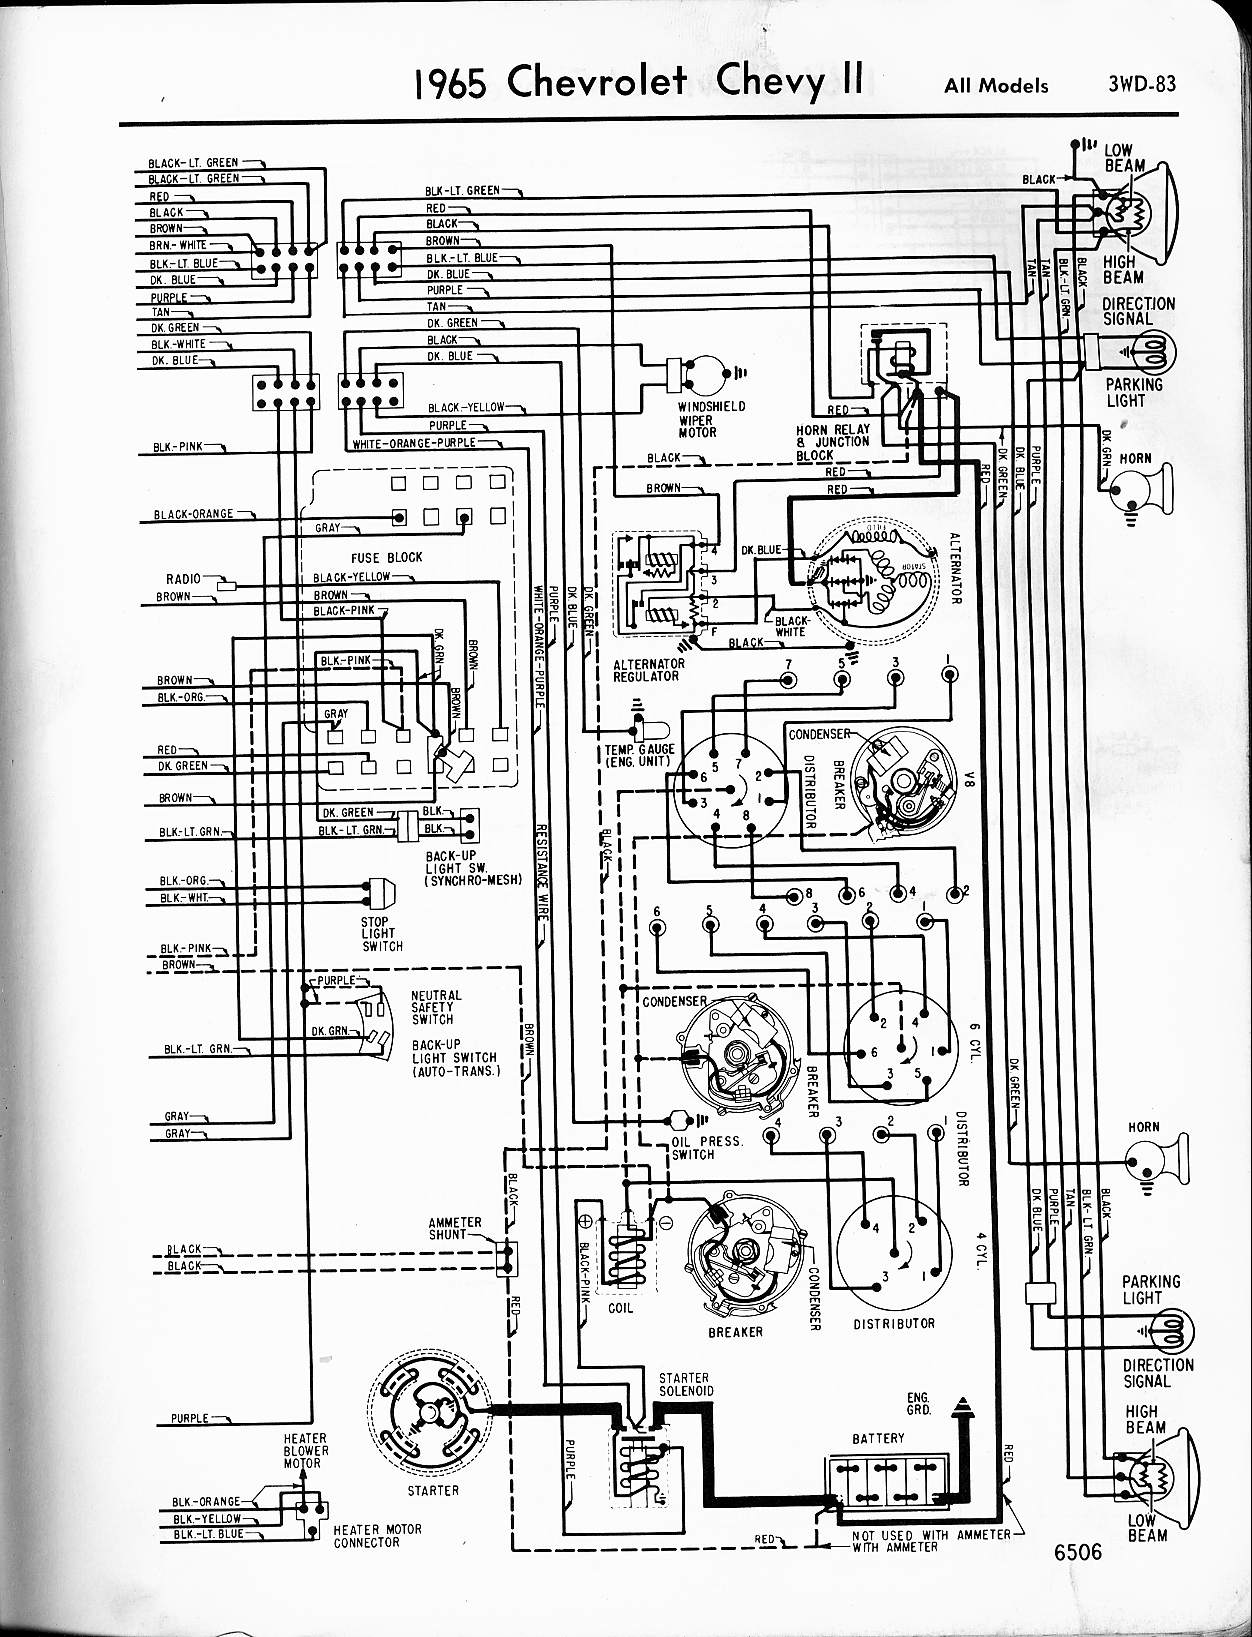 1962 Chevy Truck Wiring Diagram Free Electricity 1984 Pickup Diagrams Rh Wizard Com 1961 Apache C10